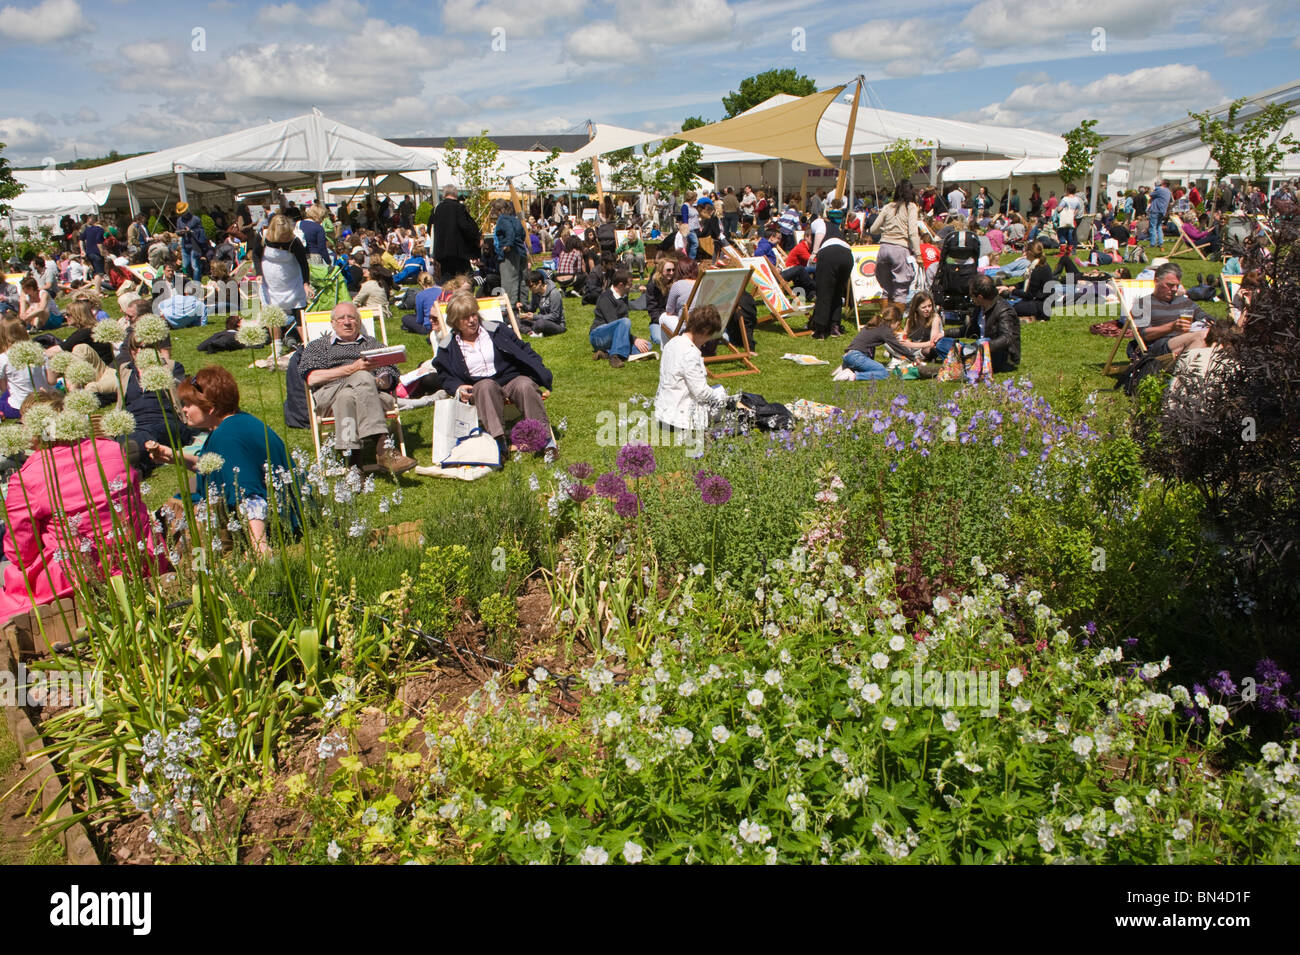 Crowds of people relaxing in the summer sunshine at Hay Festival 2010 Hay on Wye Powys Wales UK - Stock Image